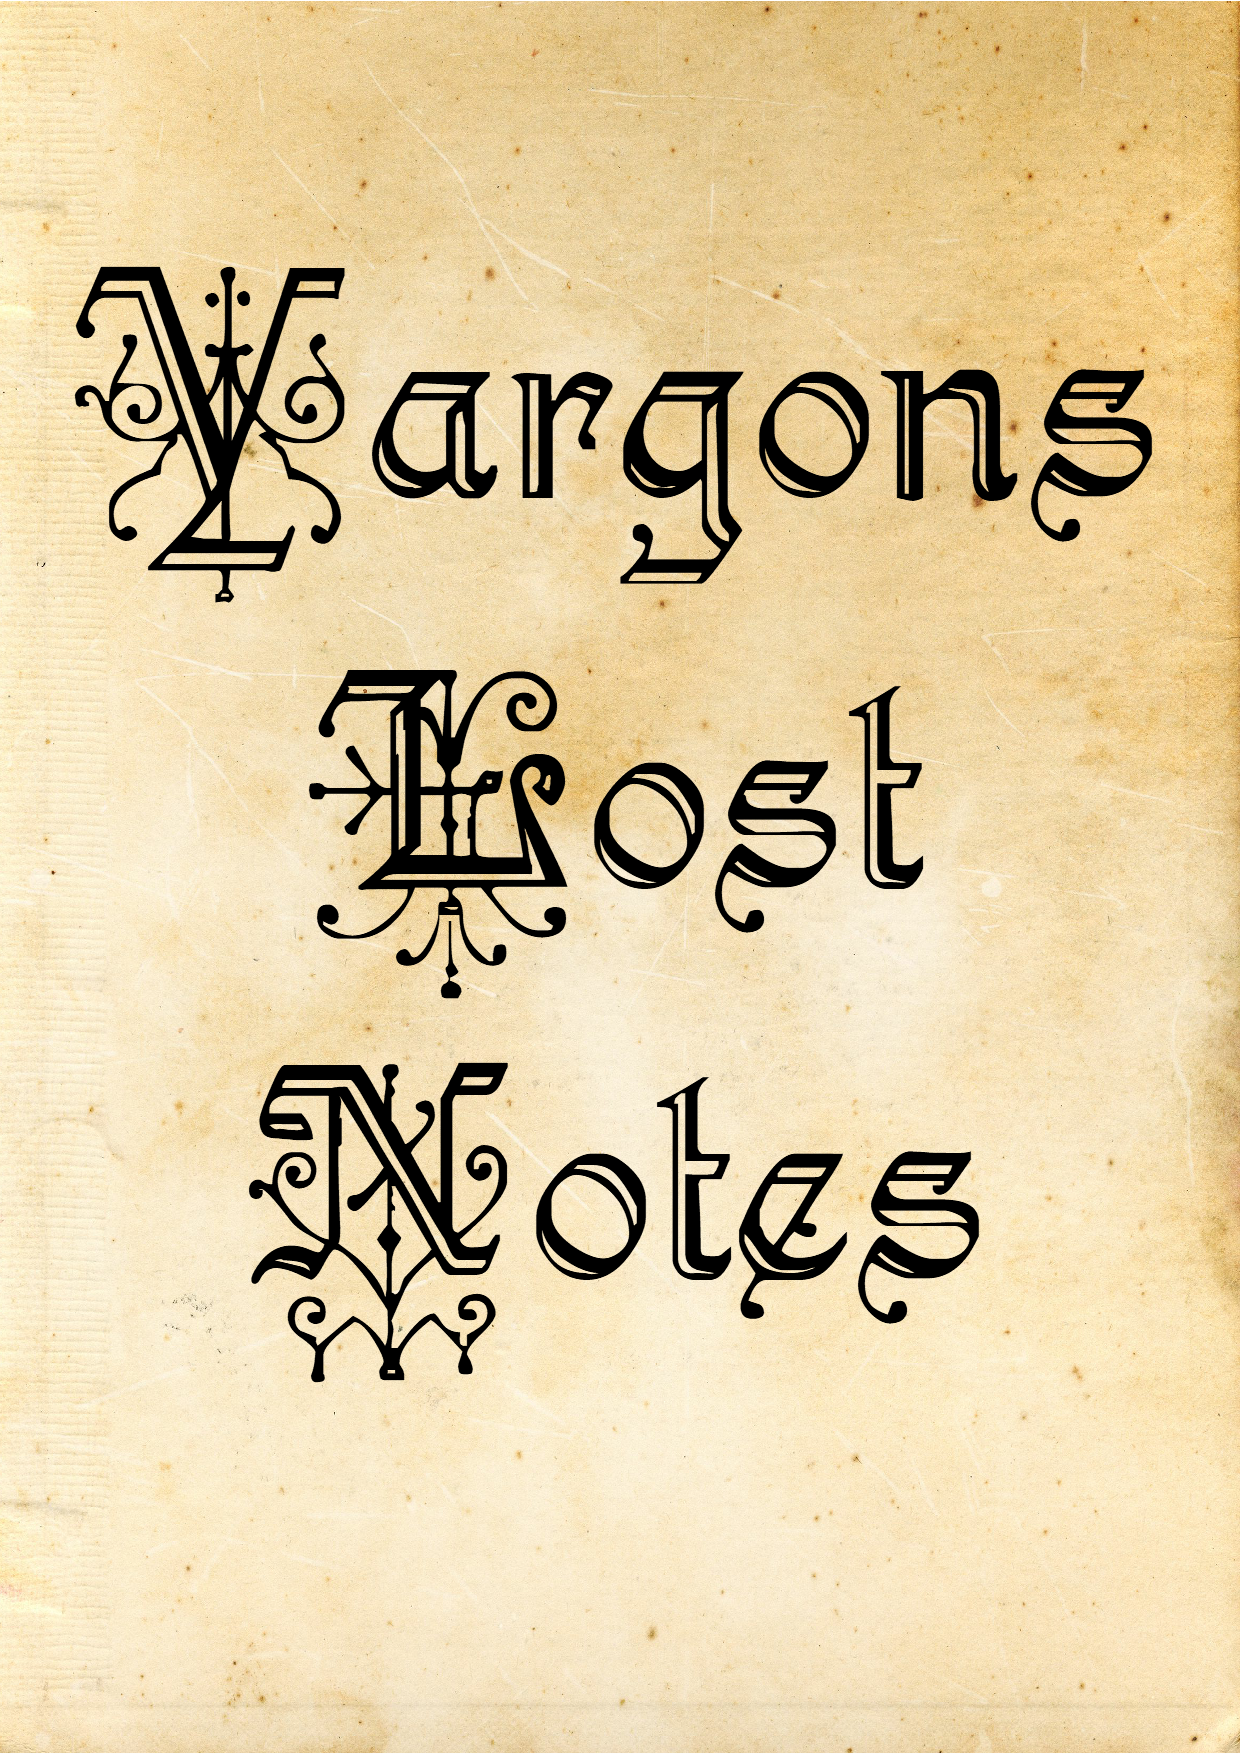 Yagon's Lost Notes00.png